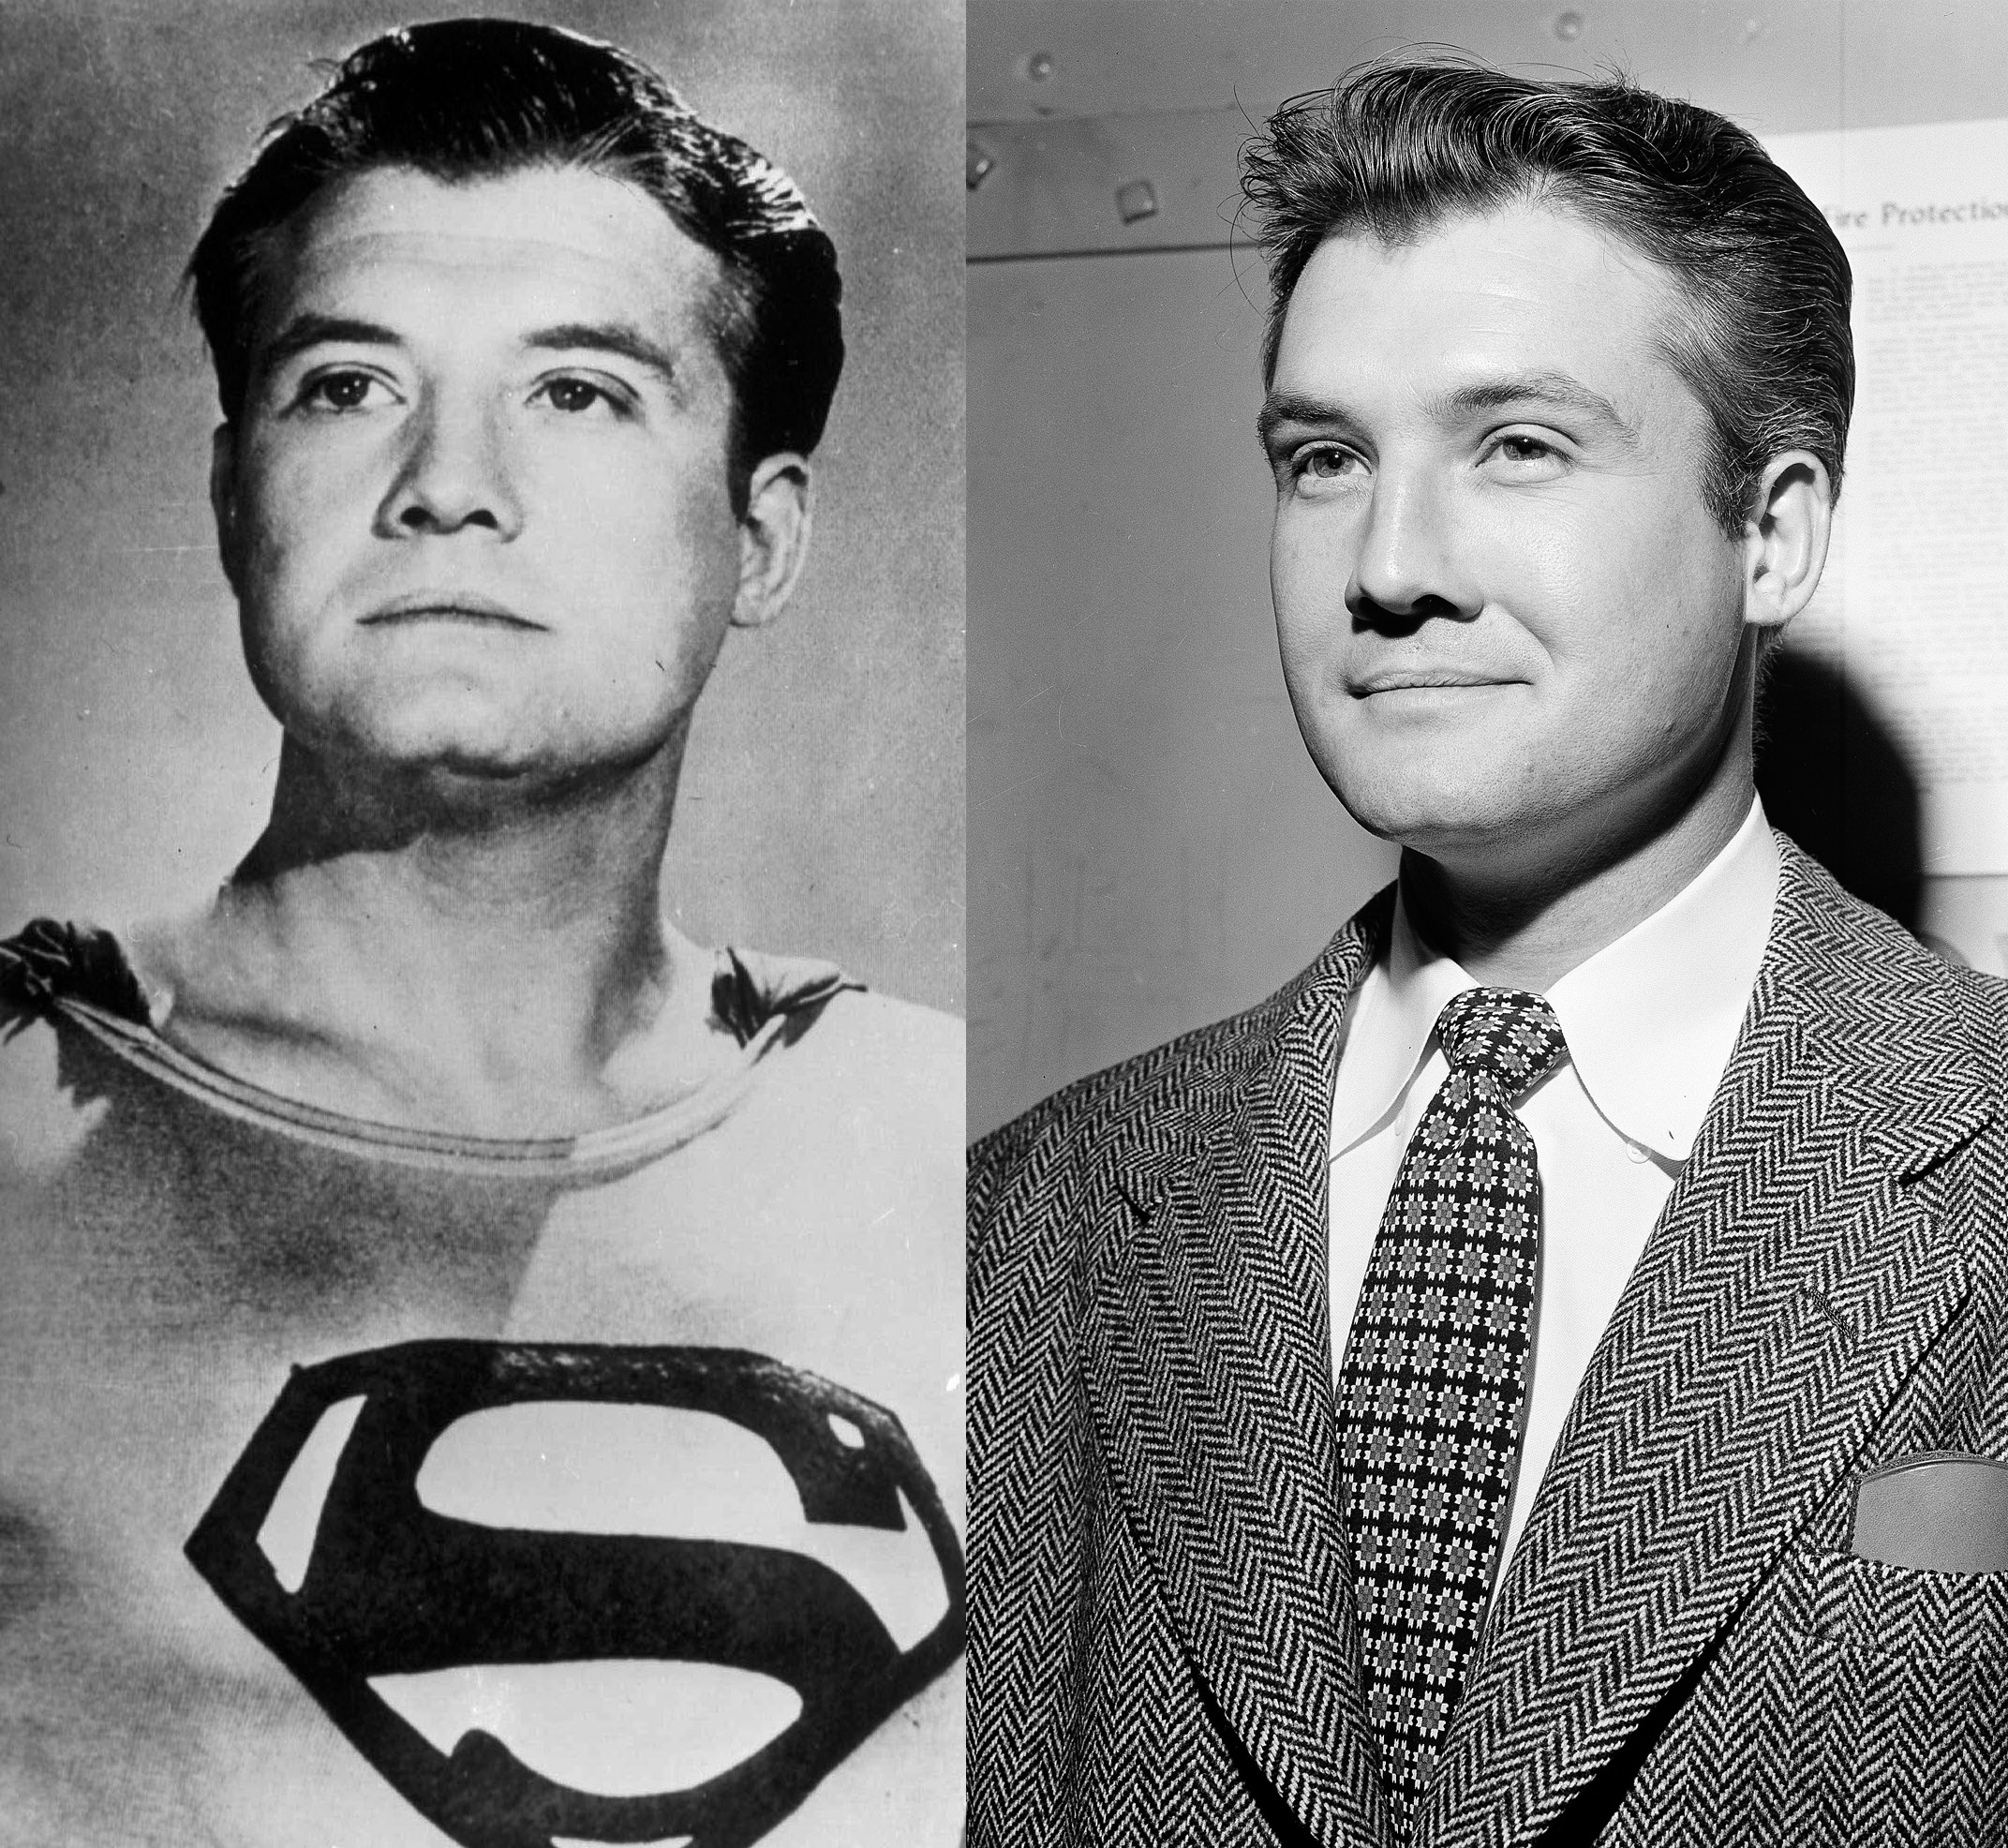 George Reeves brought Superman to life in The Adventures of Superman from 1925 until he died in 1958. He even appeared in I Love Lucy as the Man of Steel.